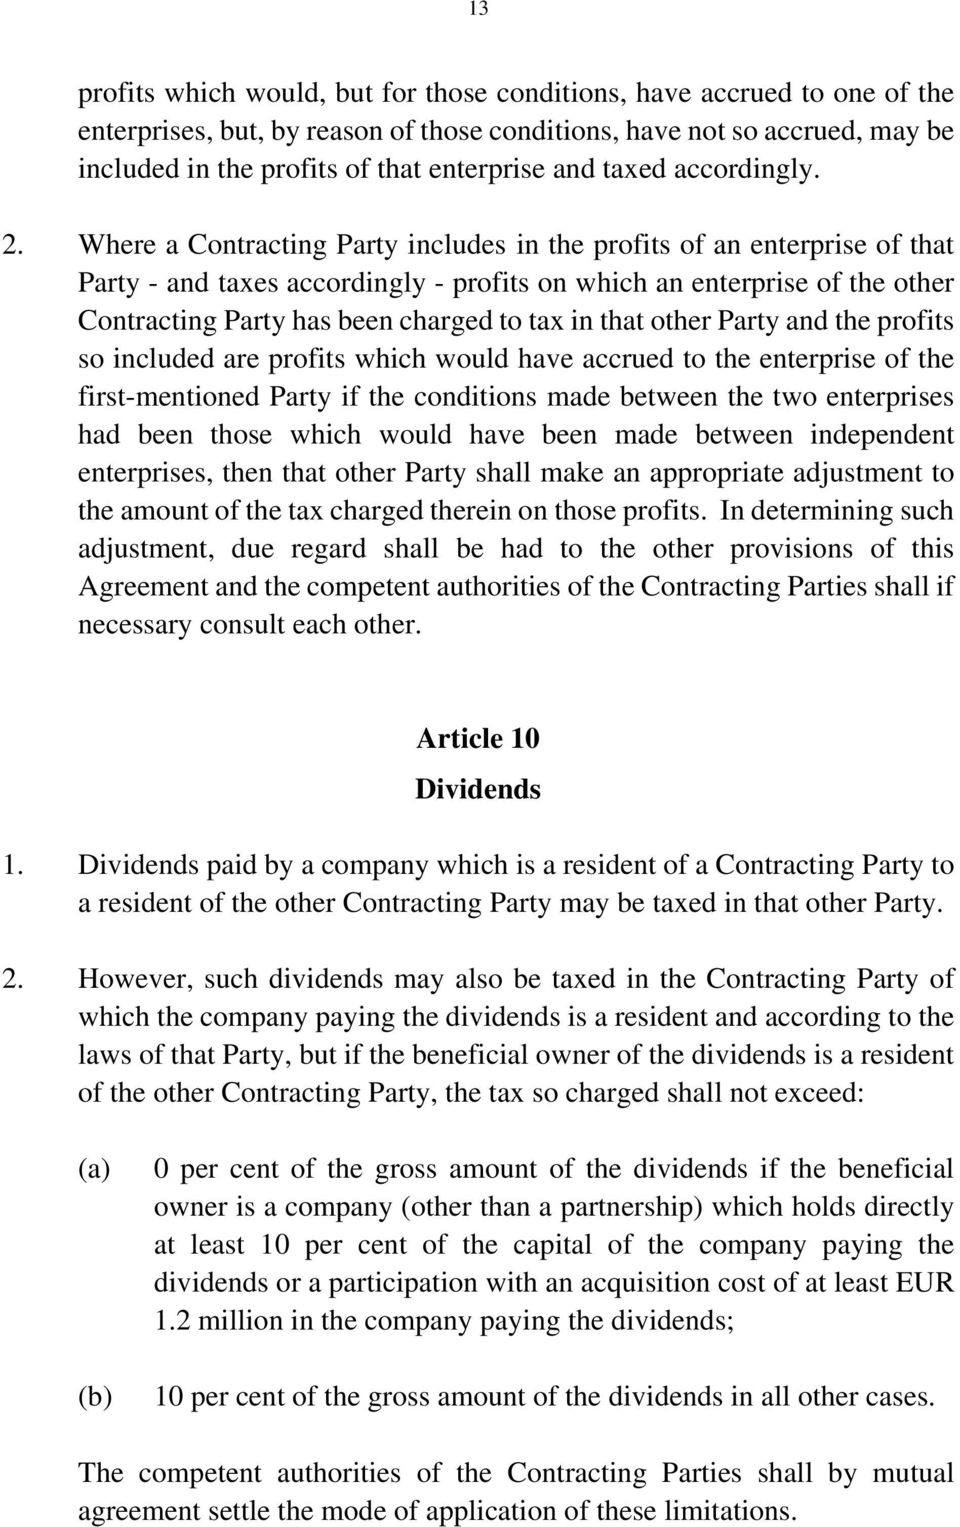 Where a Contracting Party includes in the profits of an enterprise of that Party - and taxes accordingly - profits on which an enterprise of the other Contracting Party has been charged to tax in